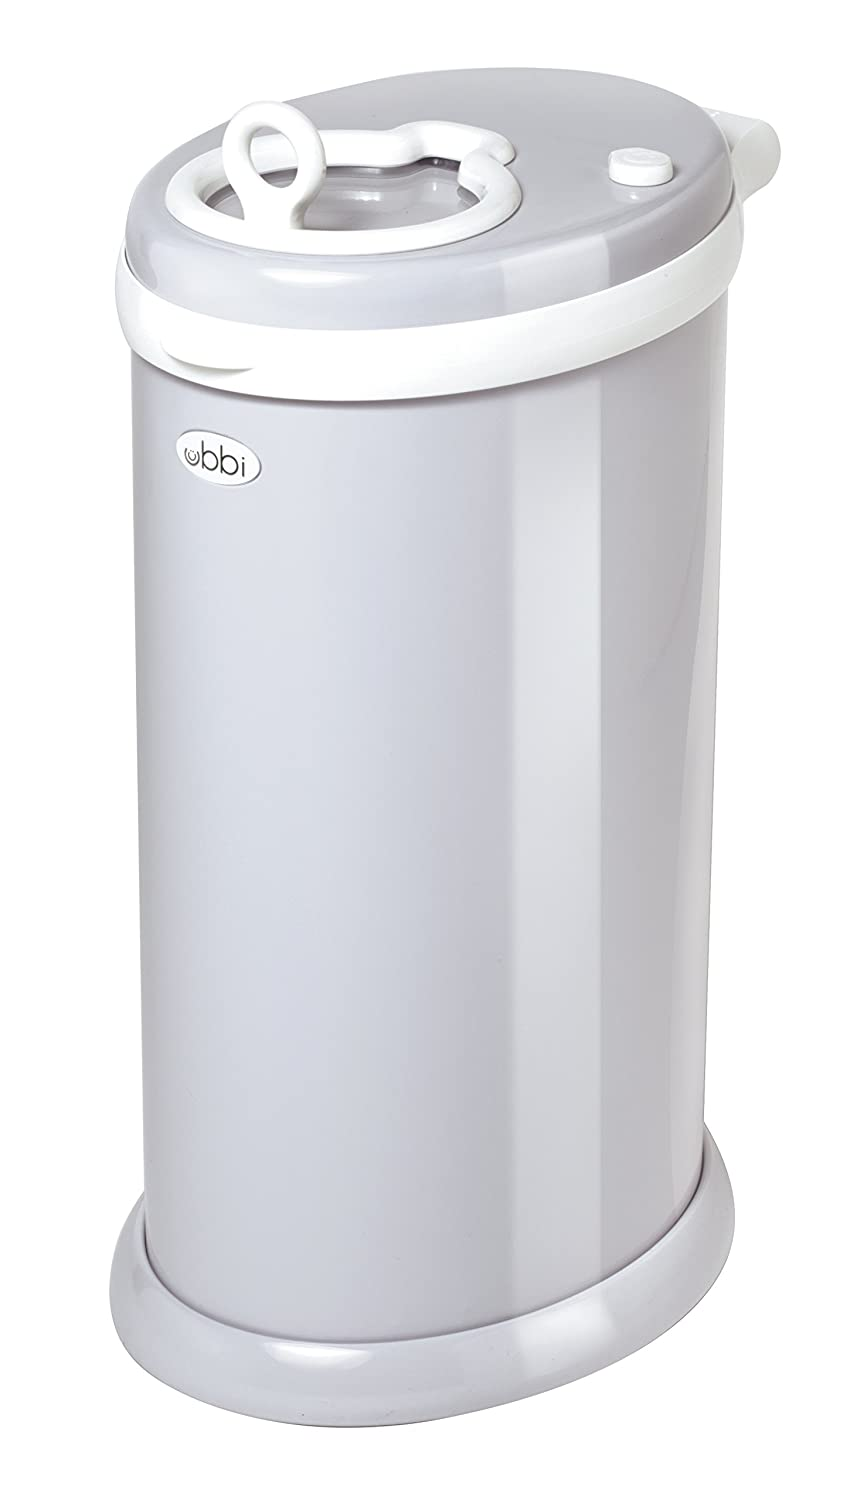 Ubbi Steel Diaper Pail, Best Diaper Pail